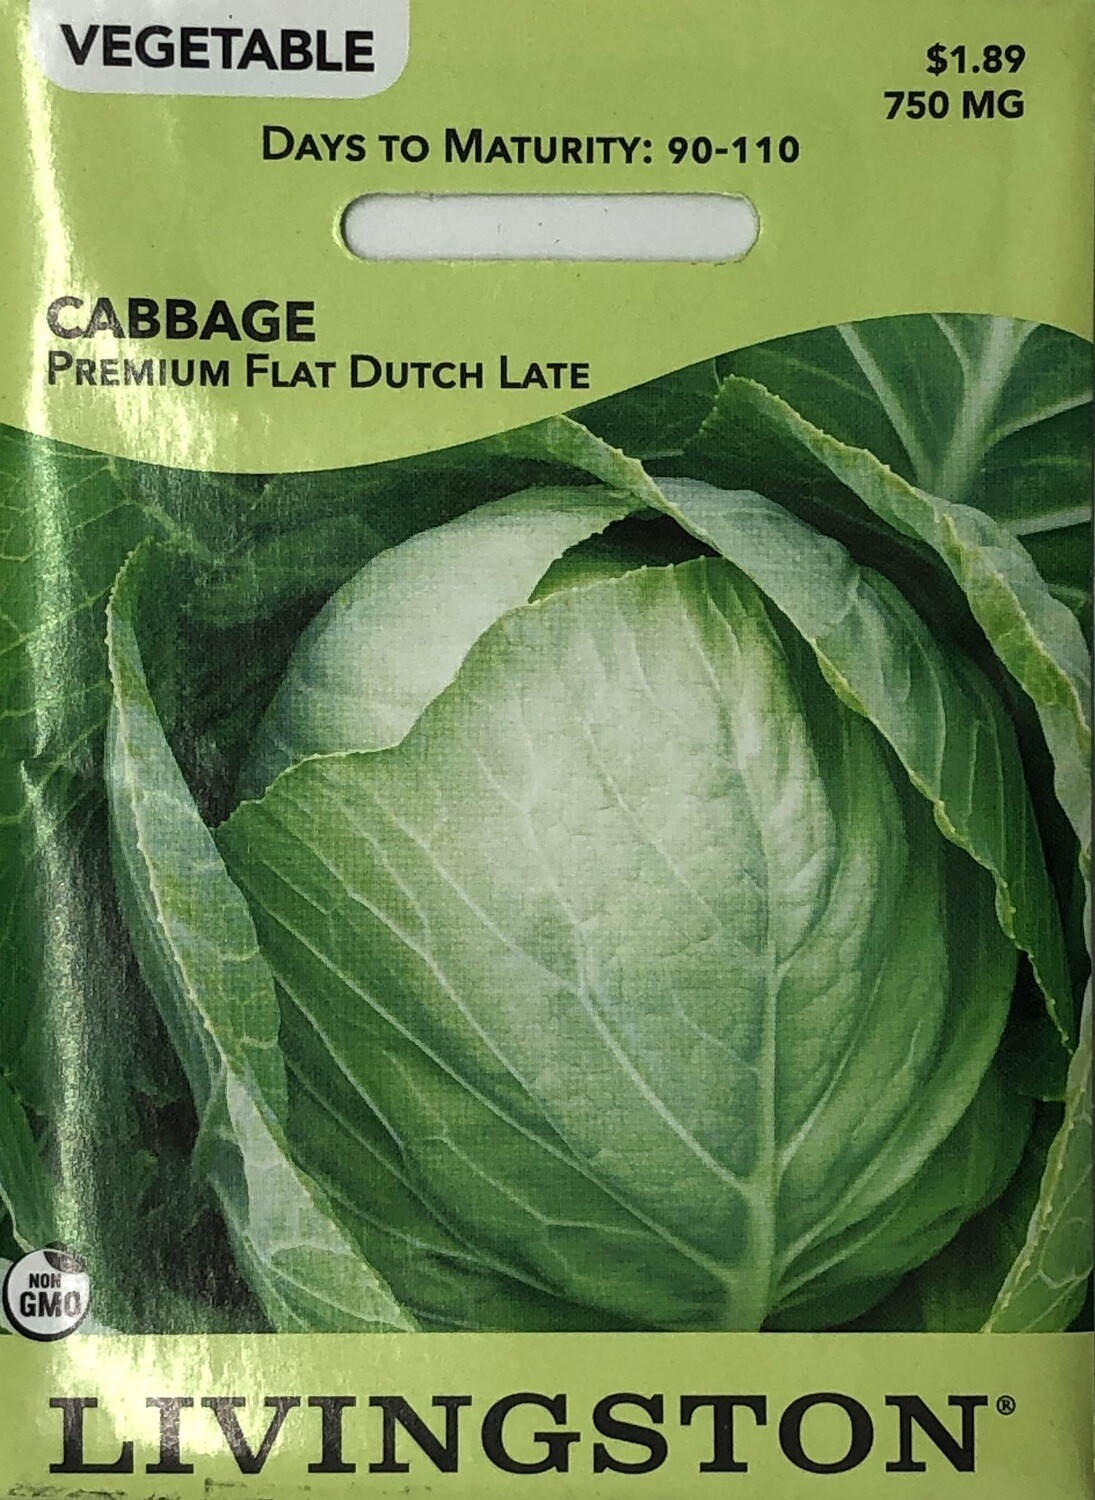 CABBAGE - PREMIUM FLAT DUTCH LATE